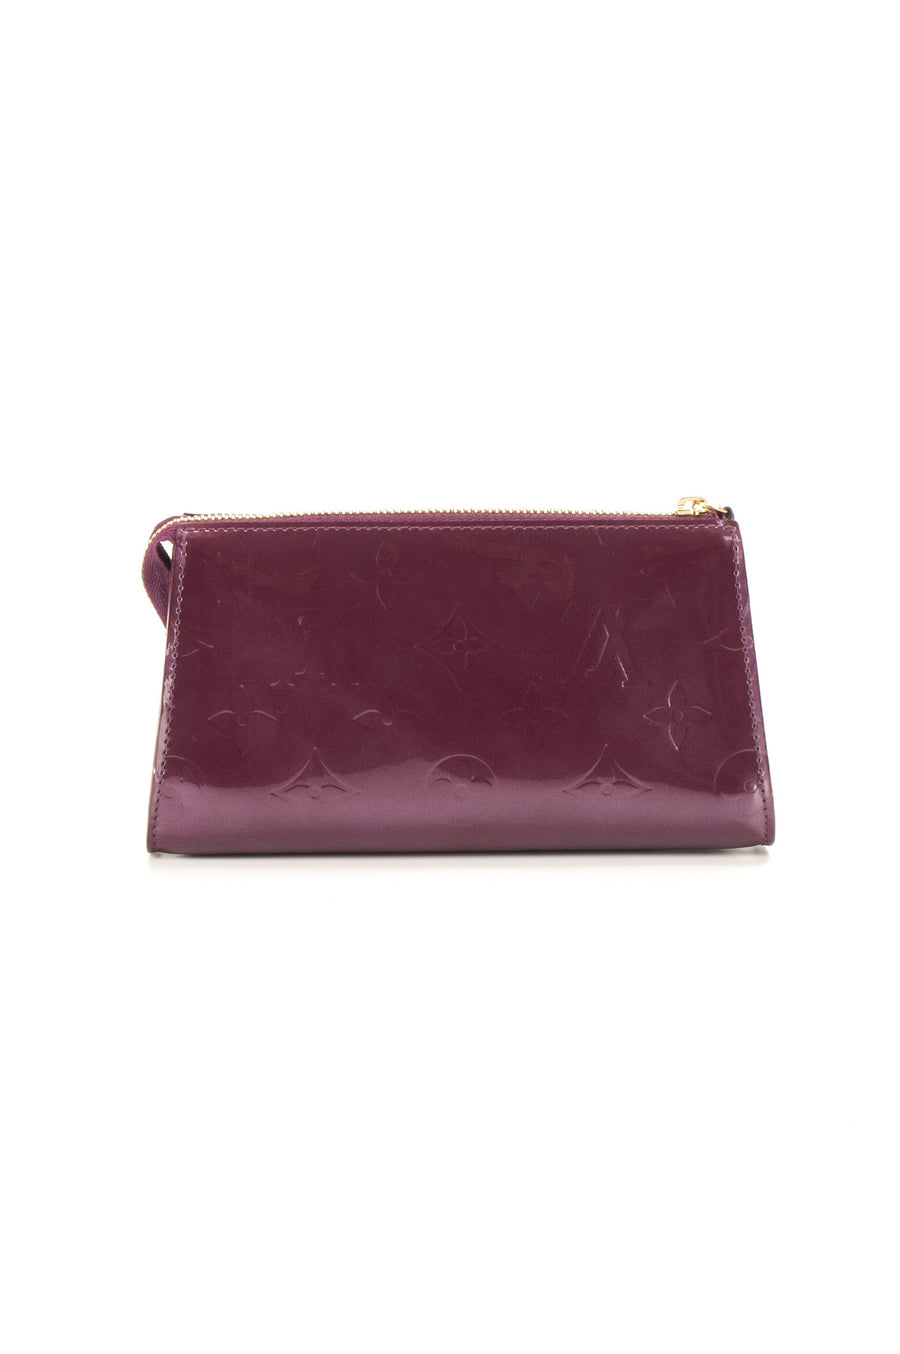 Louis Vuitton Violette Monogram Vernis Truth Pouch